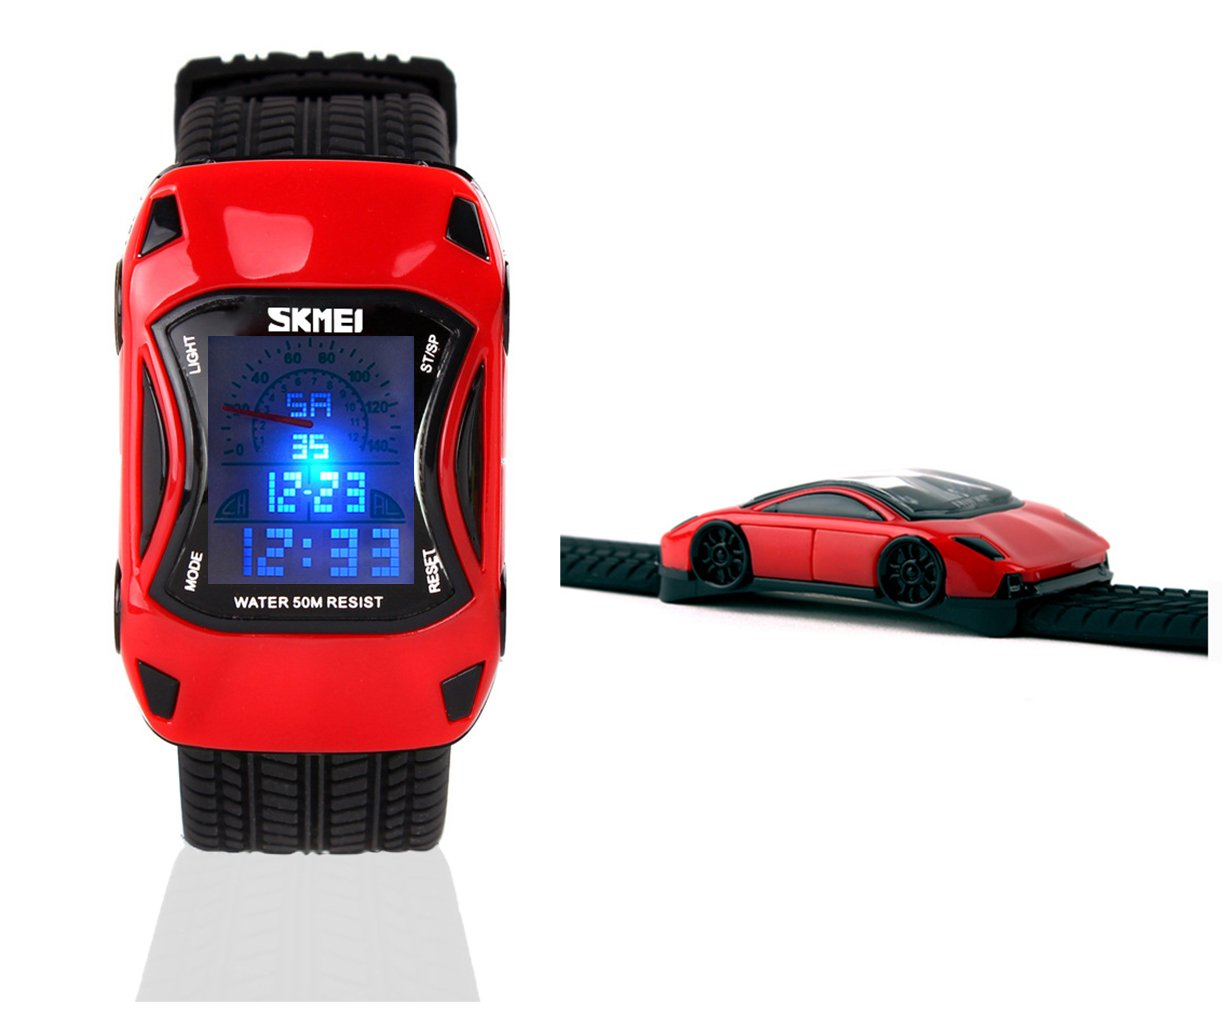 Kids Watches Boys Waterproof Sports Digital LED Wristwatches 7 Colors Flashing Car Shape Wrist Watches for Children (red)